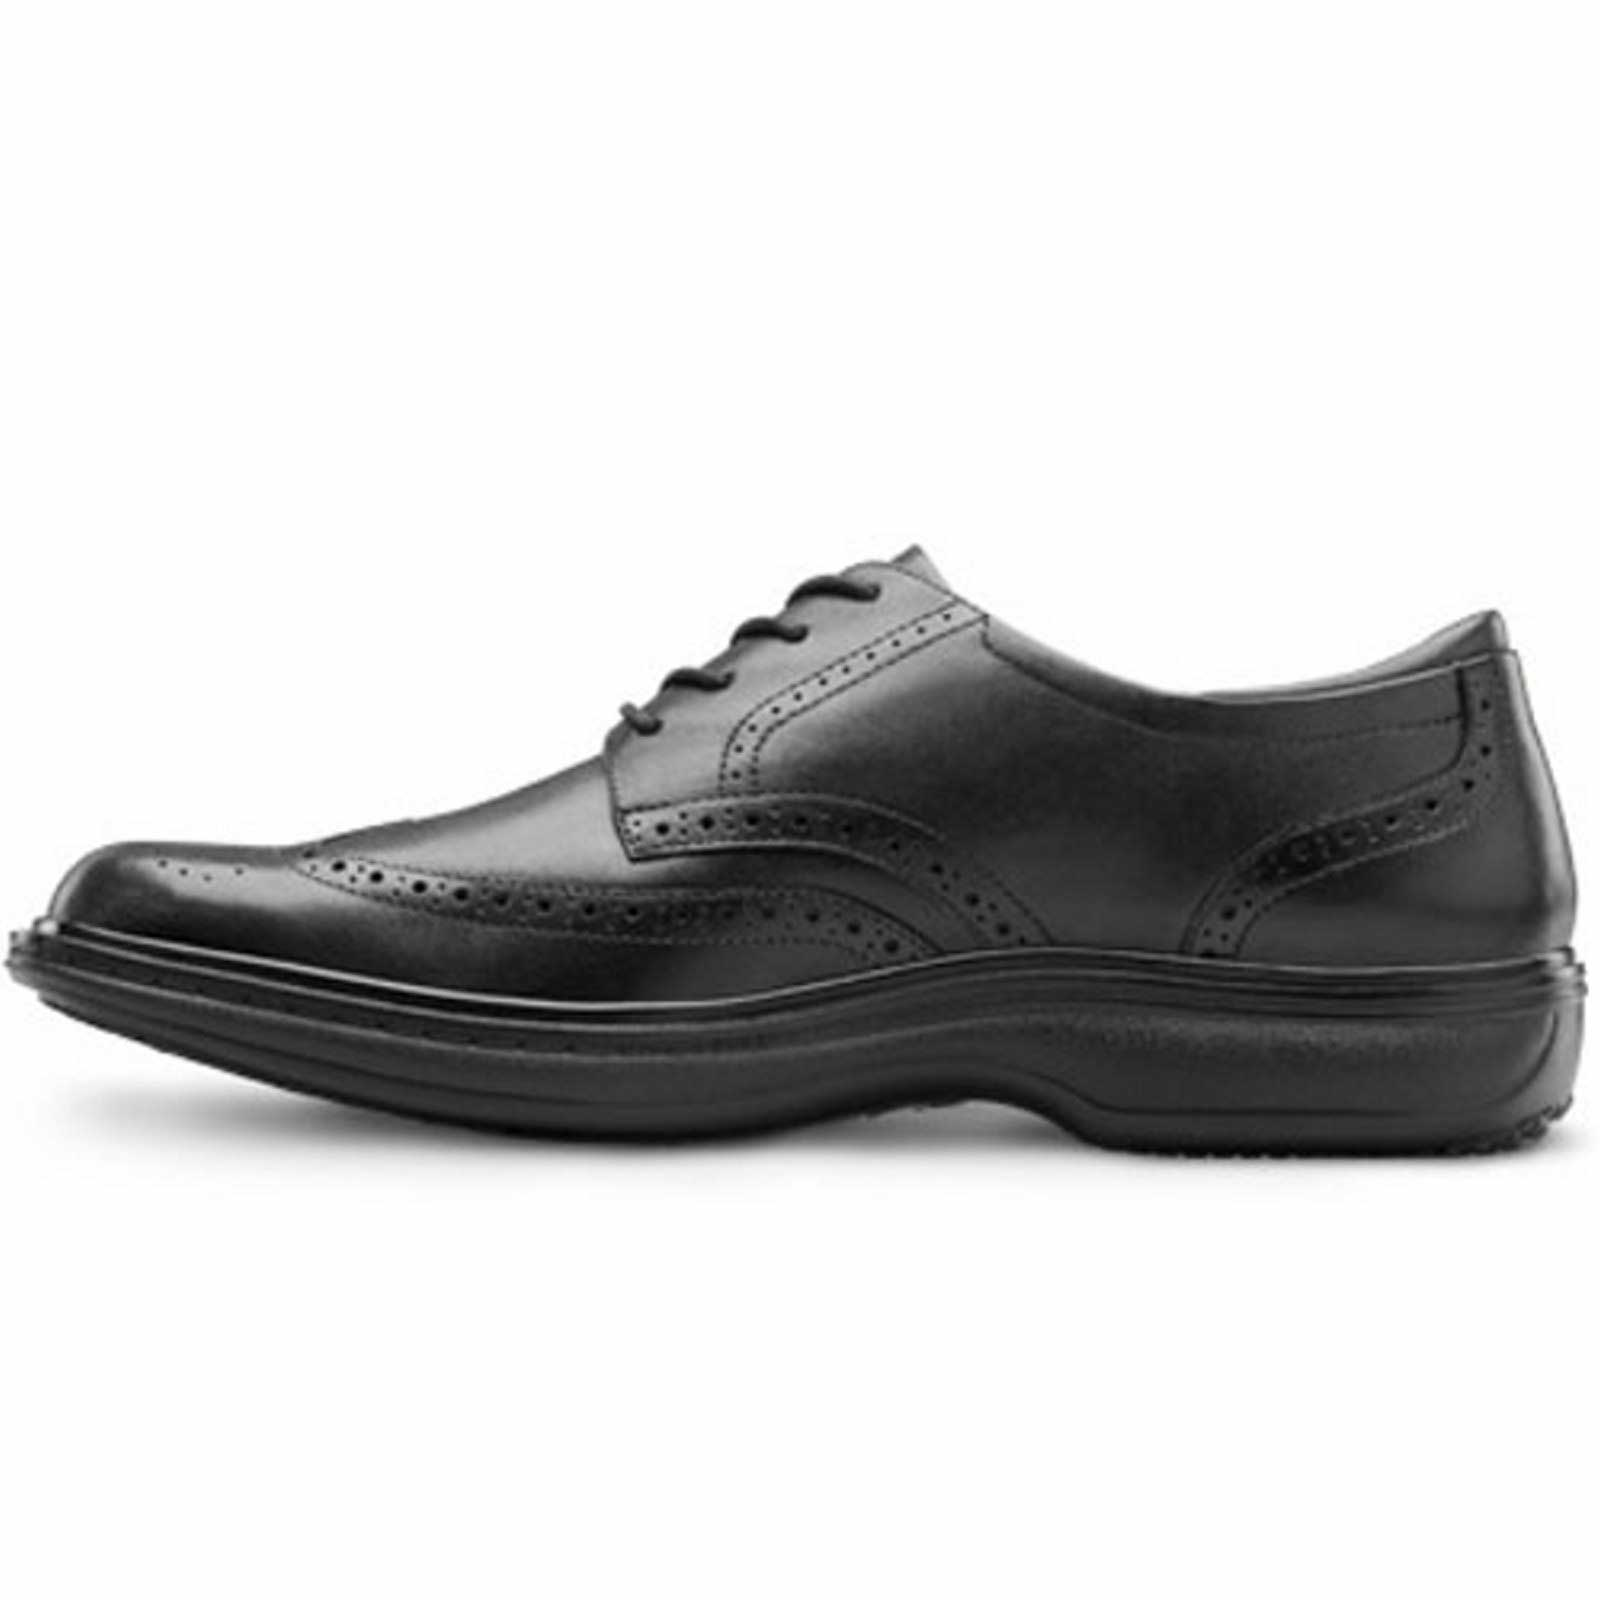 Details about Dr Comfort Wing Men s Therapeutic Diabetic Dress Shoe